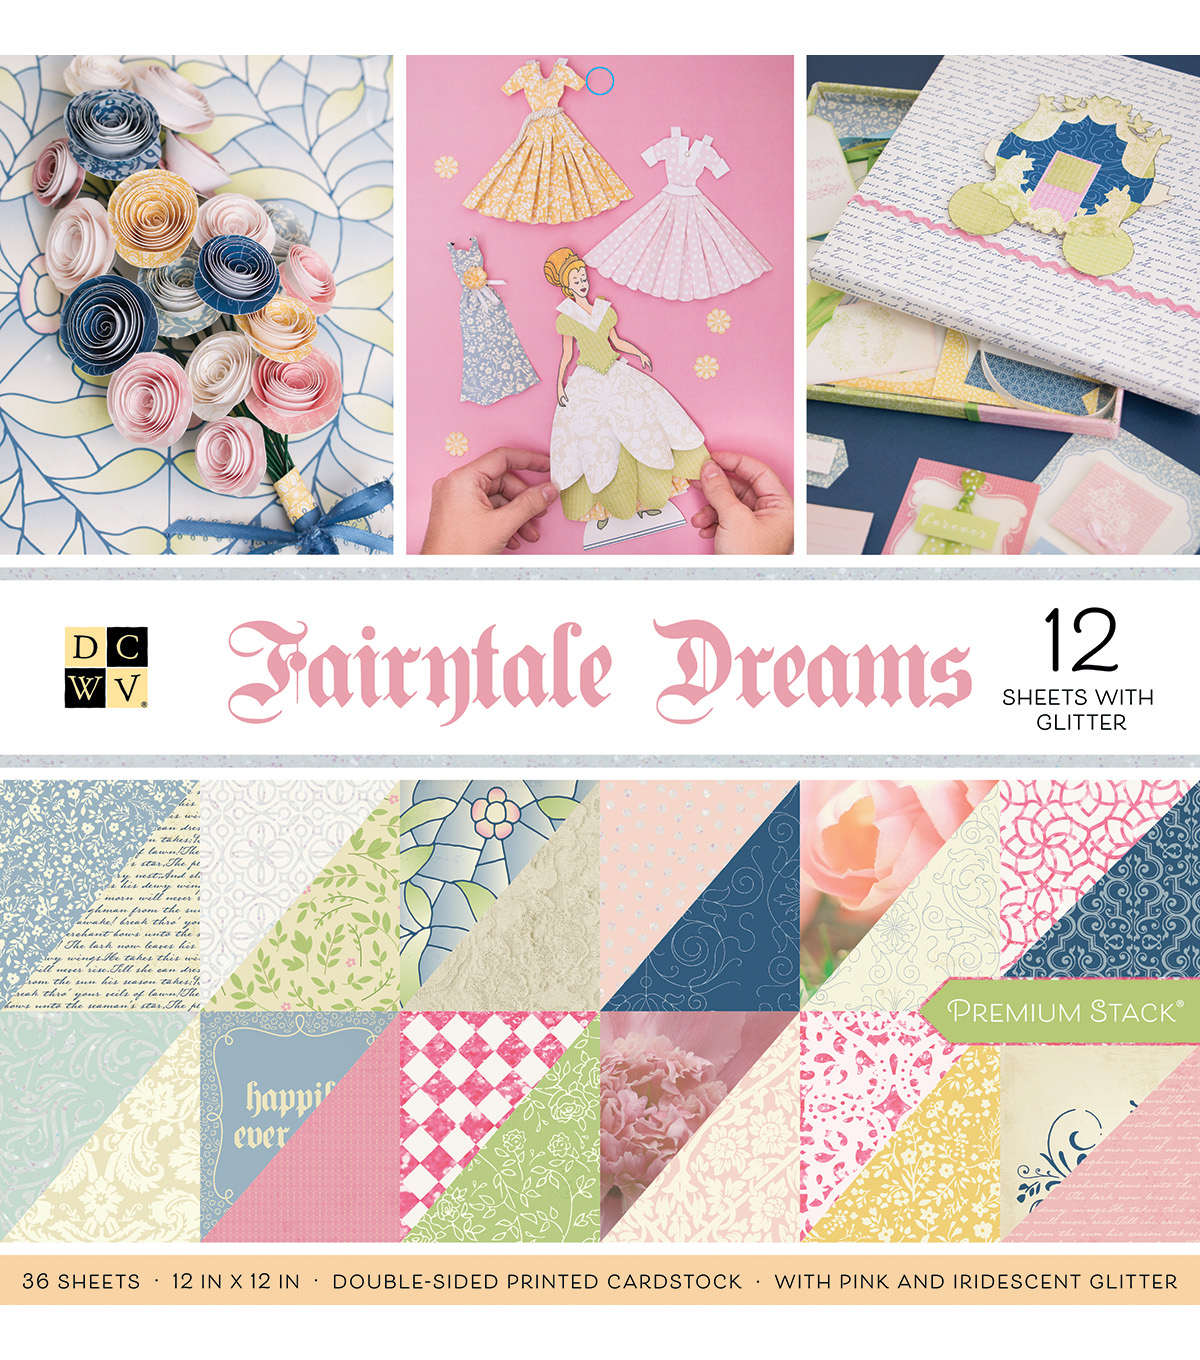 Image result for DCWV Fairytale dreams stack